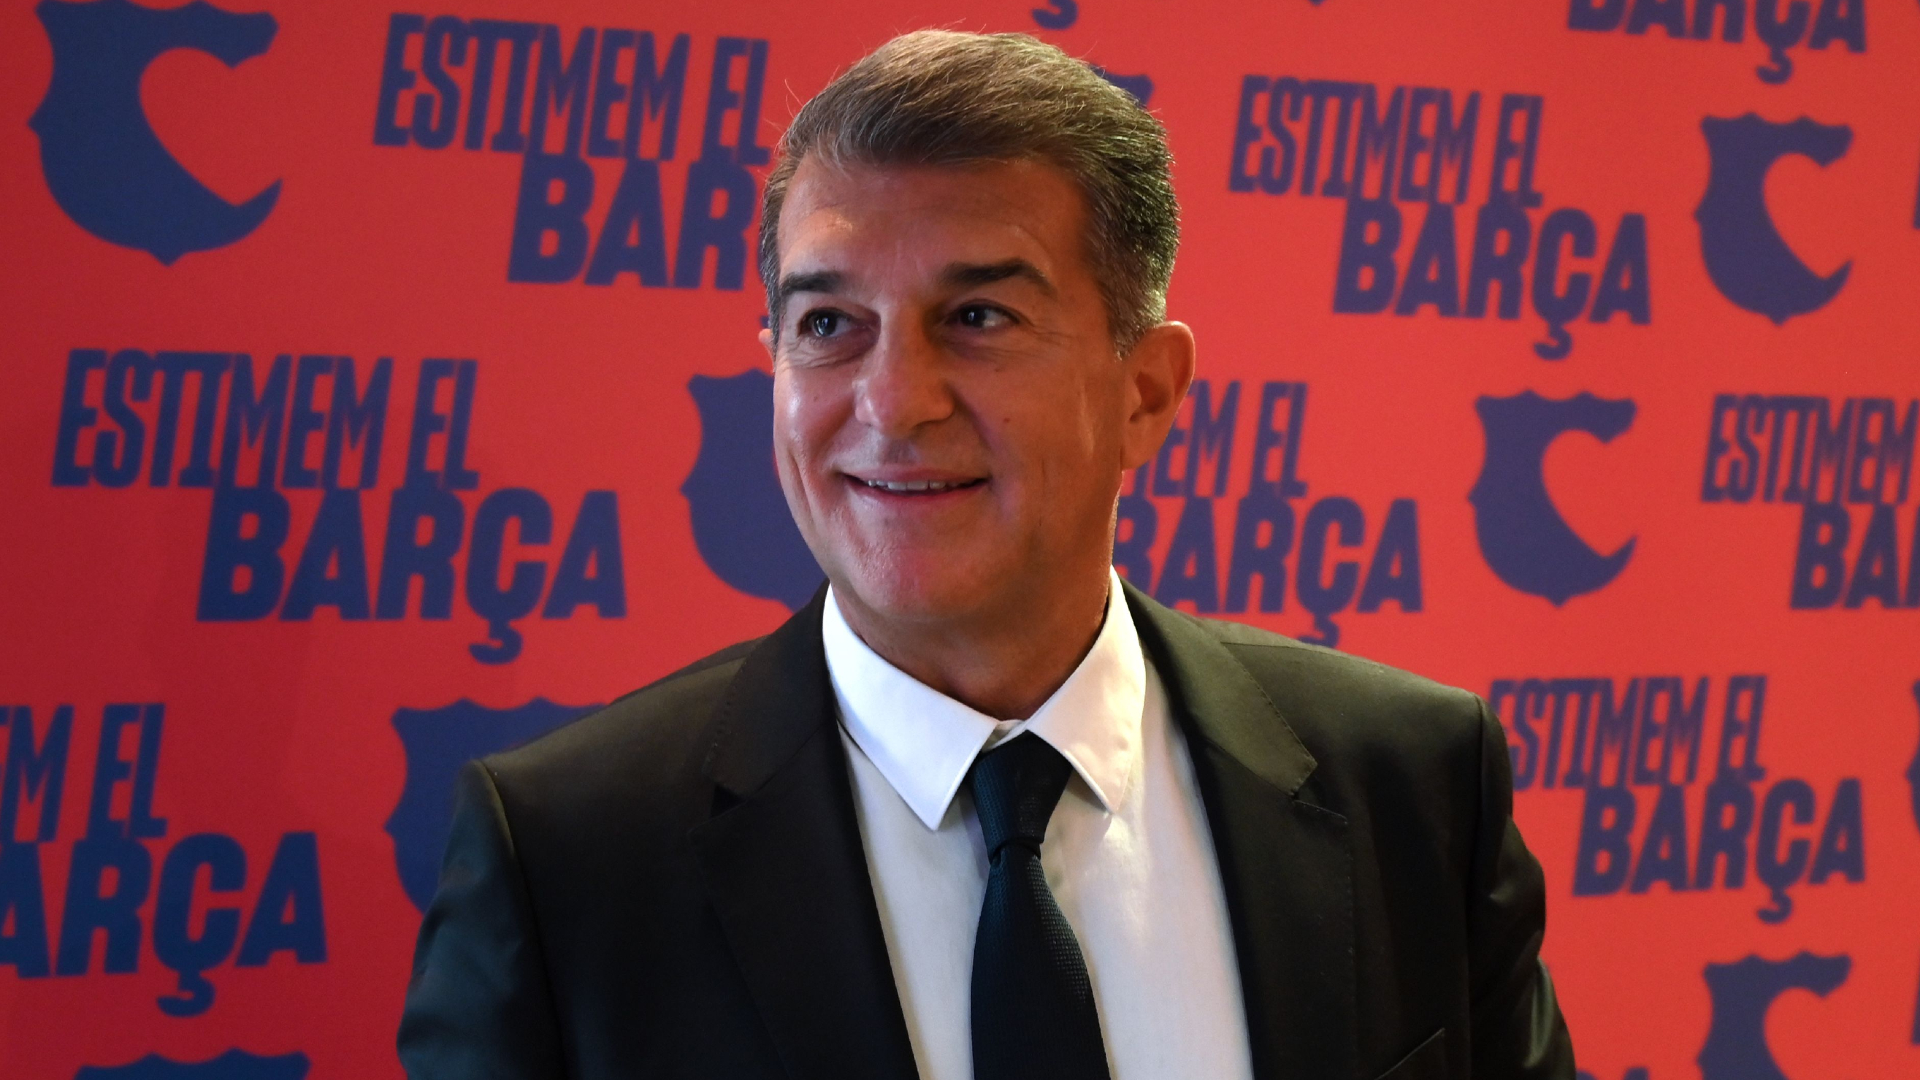 Barcelona salary limit dramatically reduced to one-eighth of Real Madrid's due to financial losses